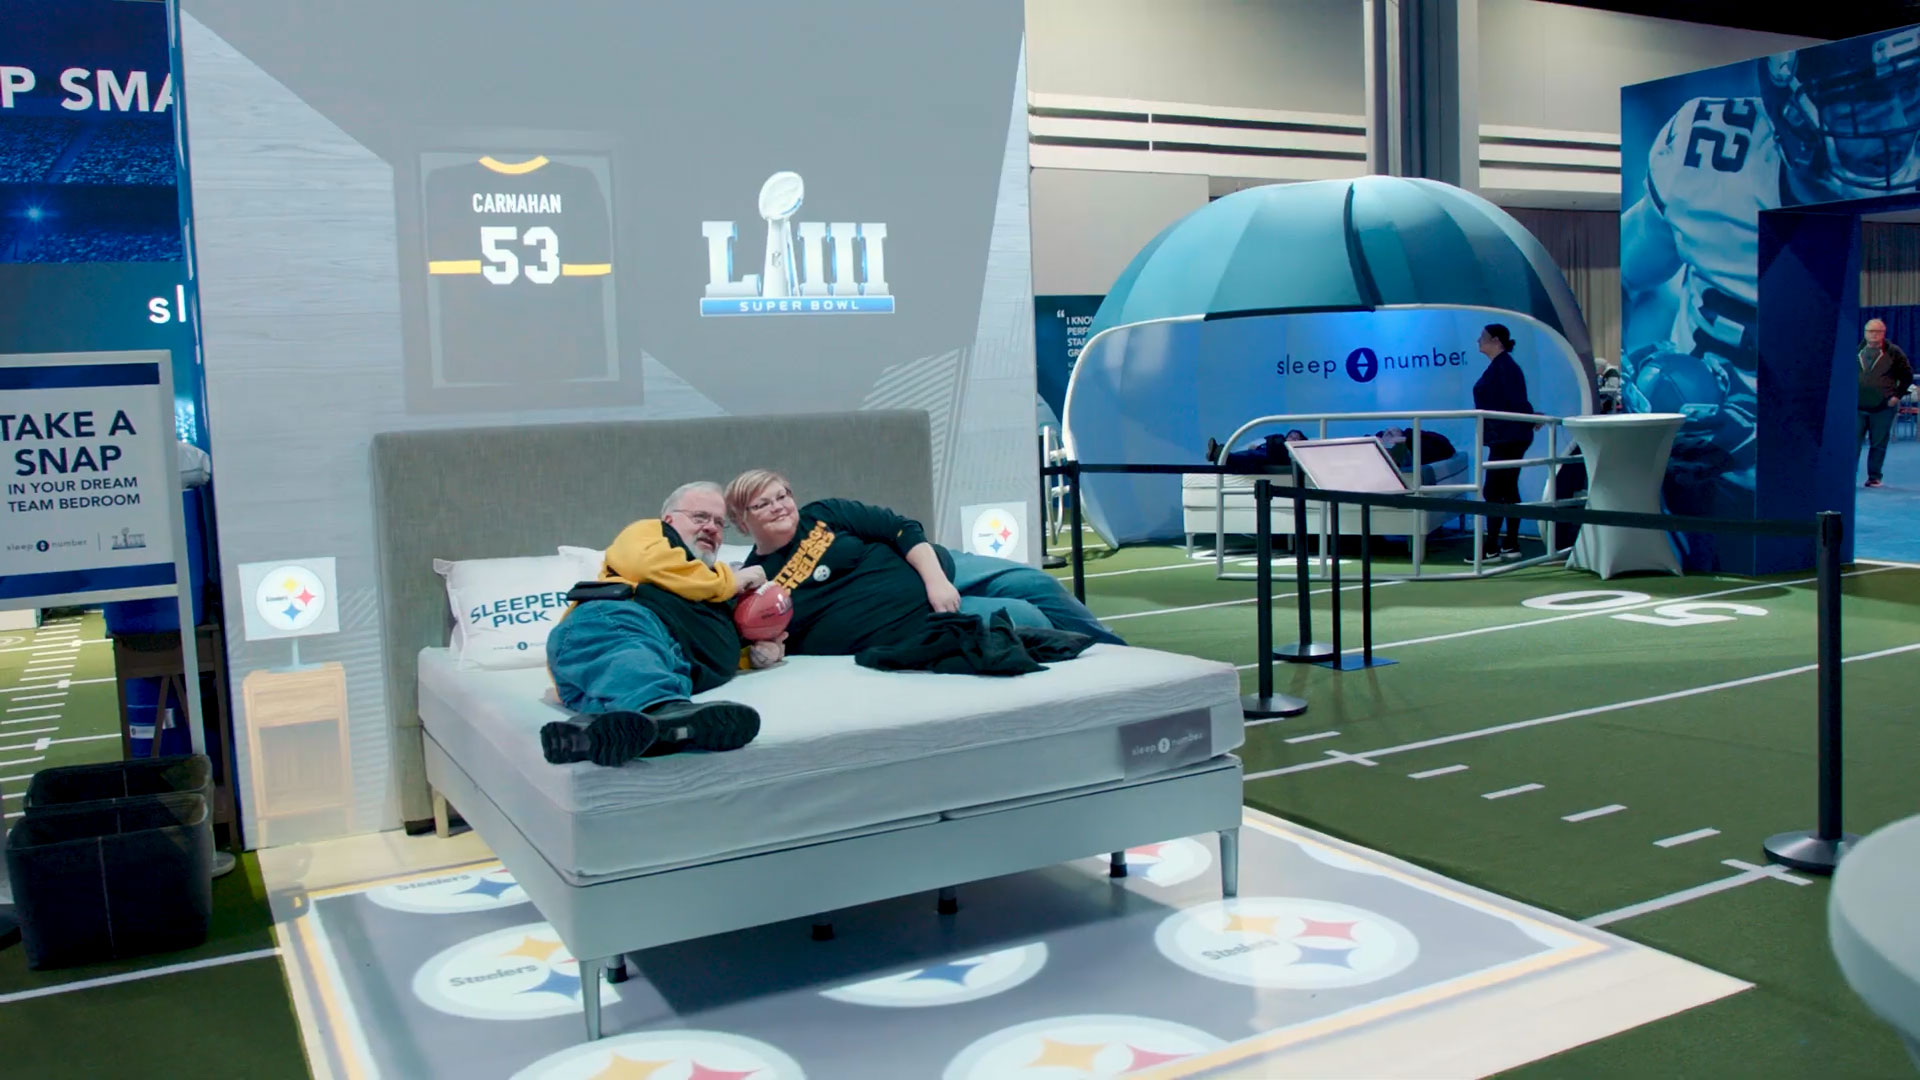 A man and woman laying on Sleep Number bed in front of Super Bowl projection